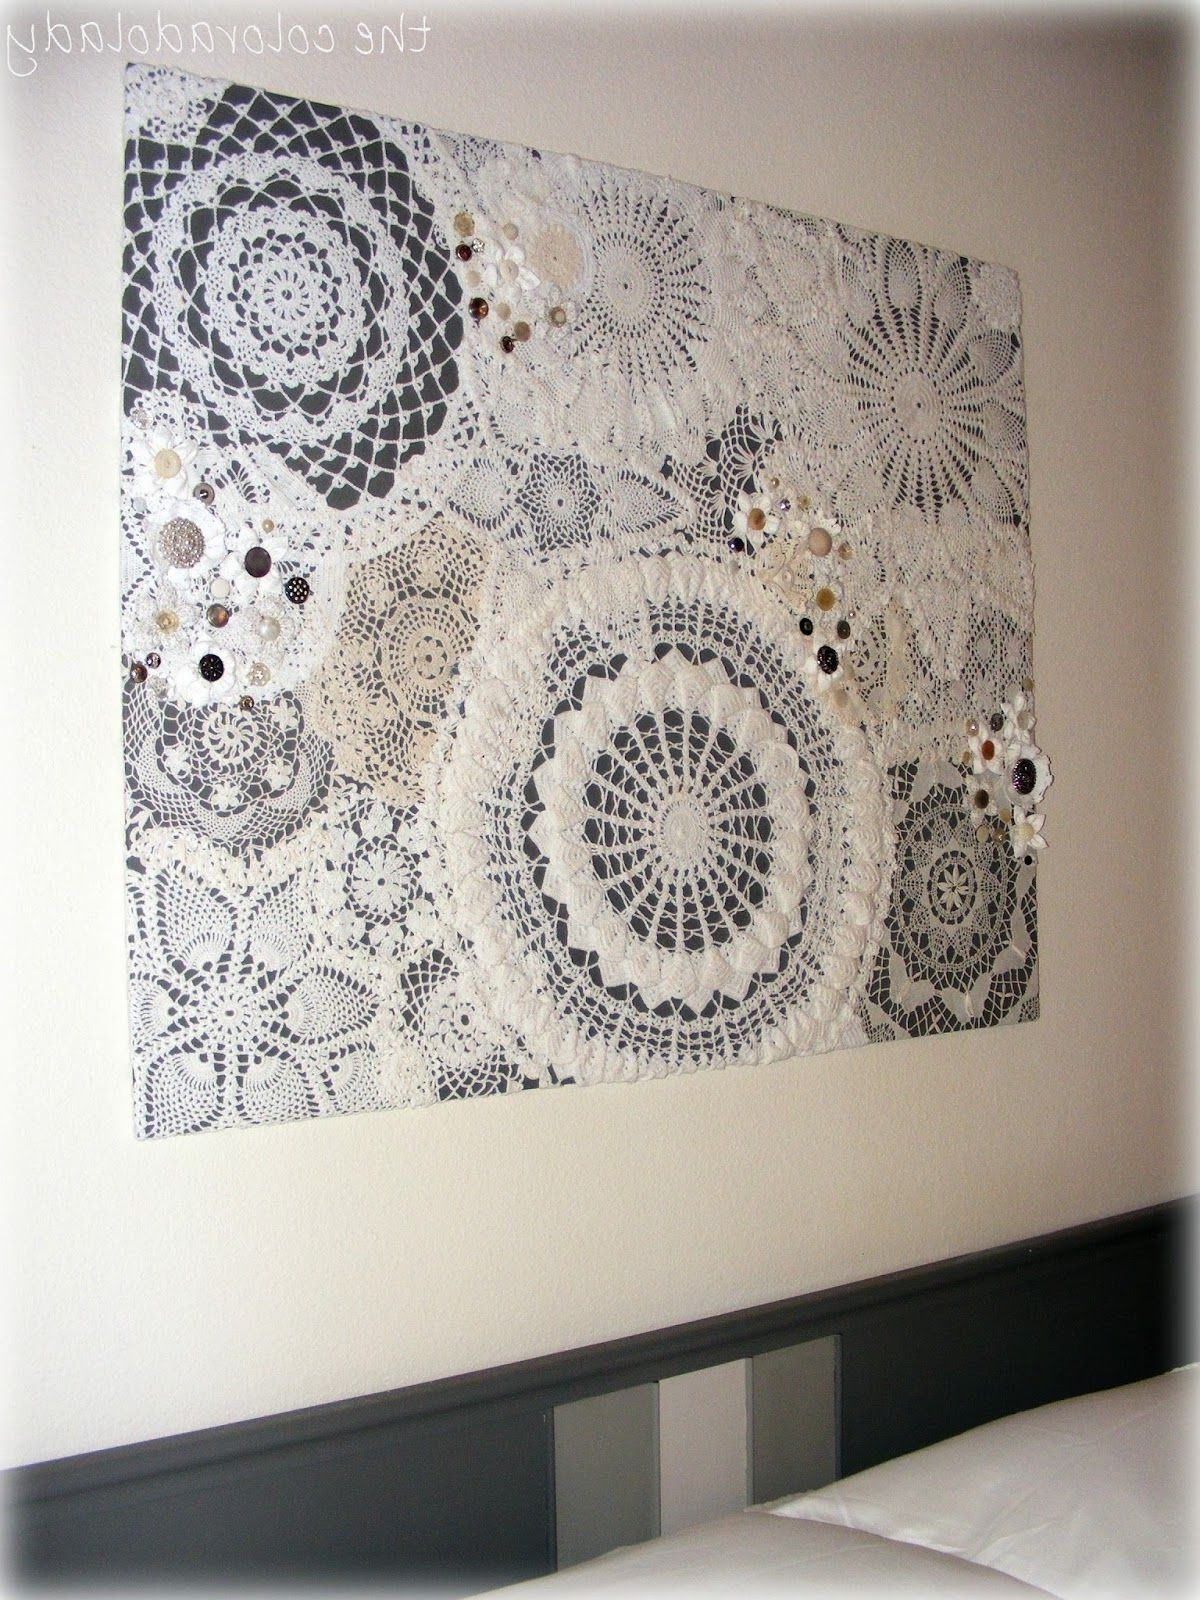 2017 Coloradolady: Vintage Thingie Thursday: Wall Art Using Vintage Throughout Crochet Wall Art (Gallery 4 of 20)